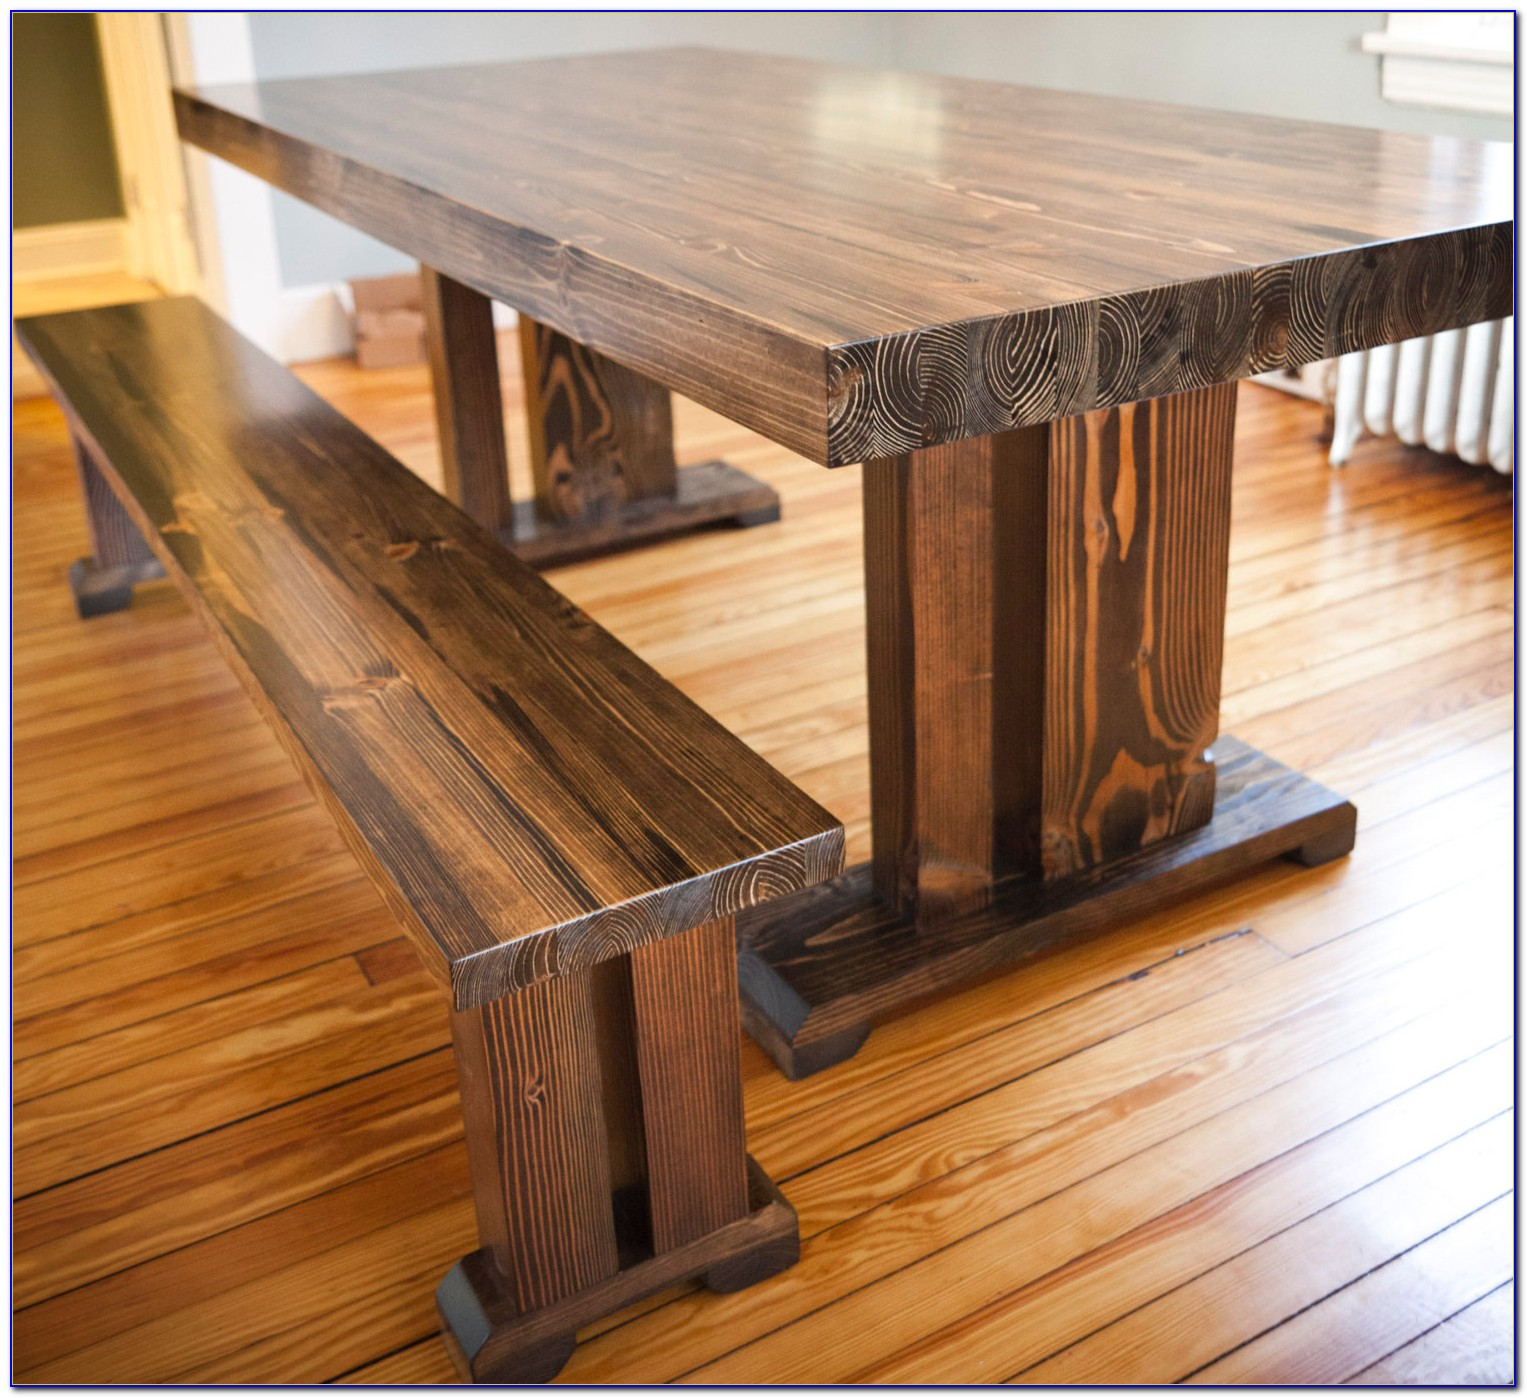 Solid Wood Table Top Movement Tabletop Home Design Ideas 8yqrwadpgr66863